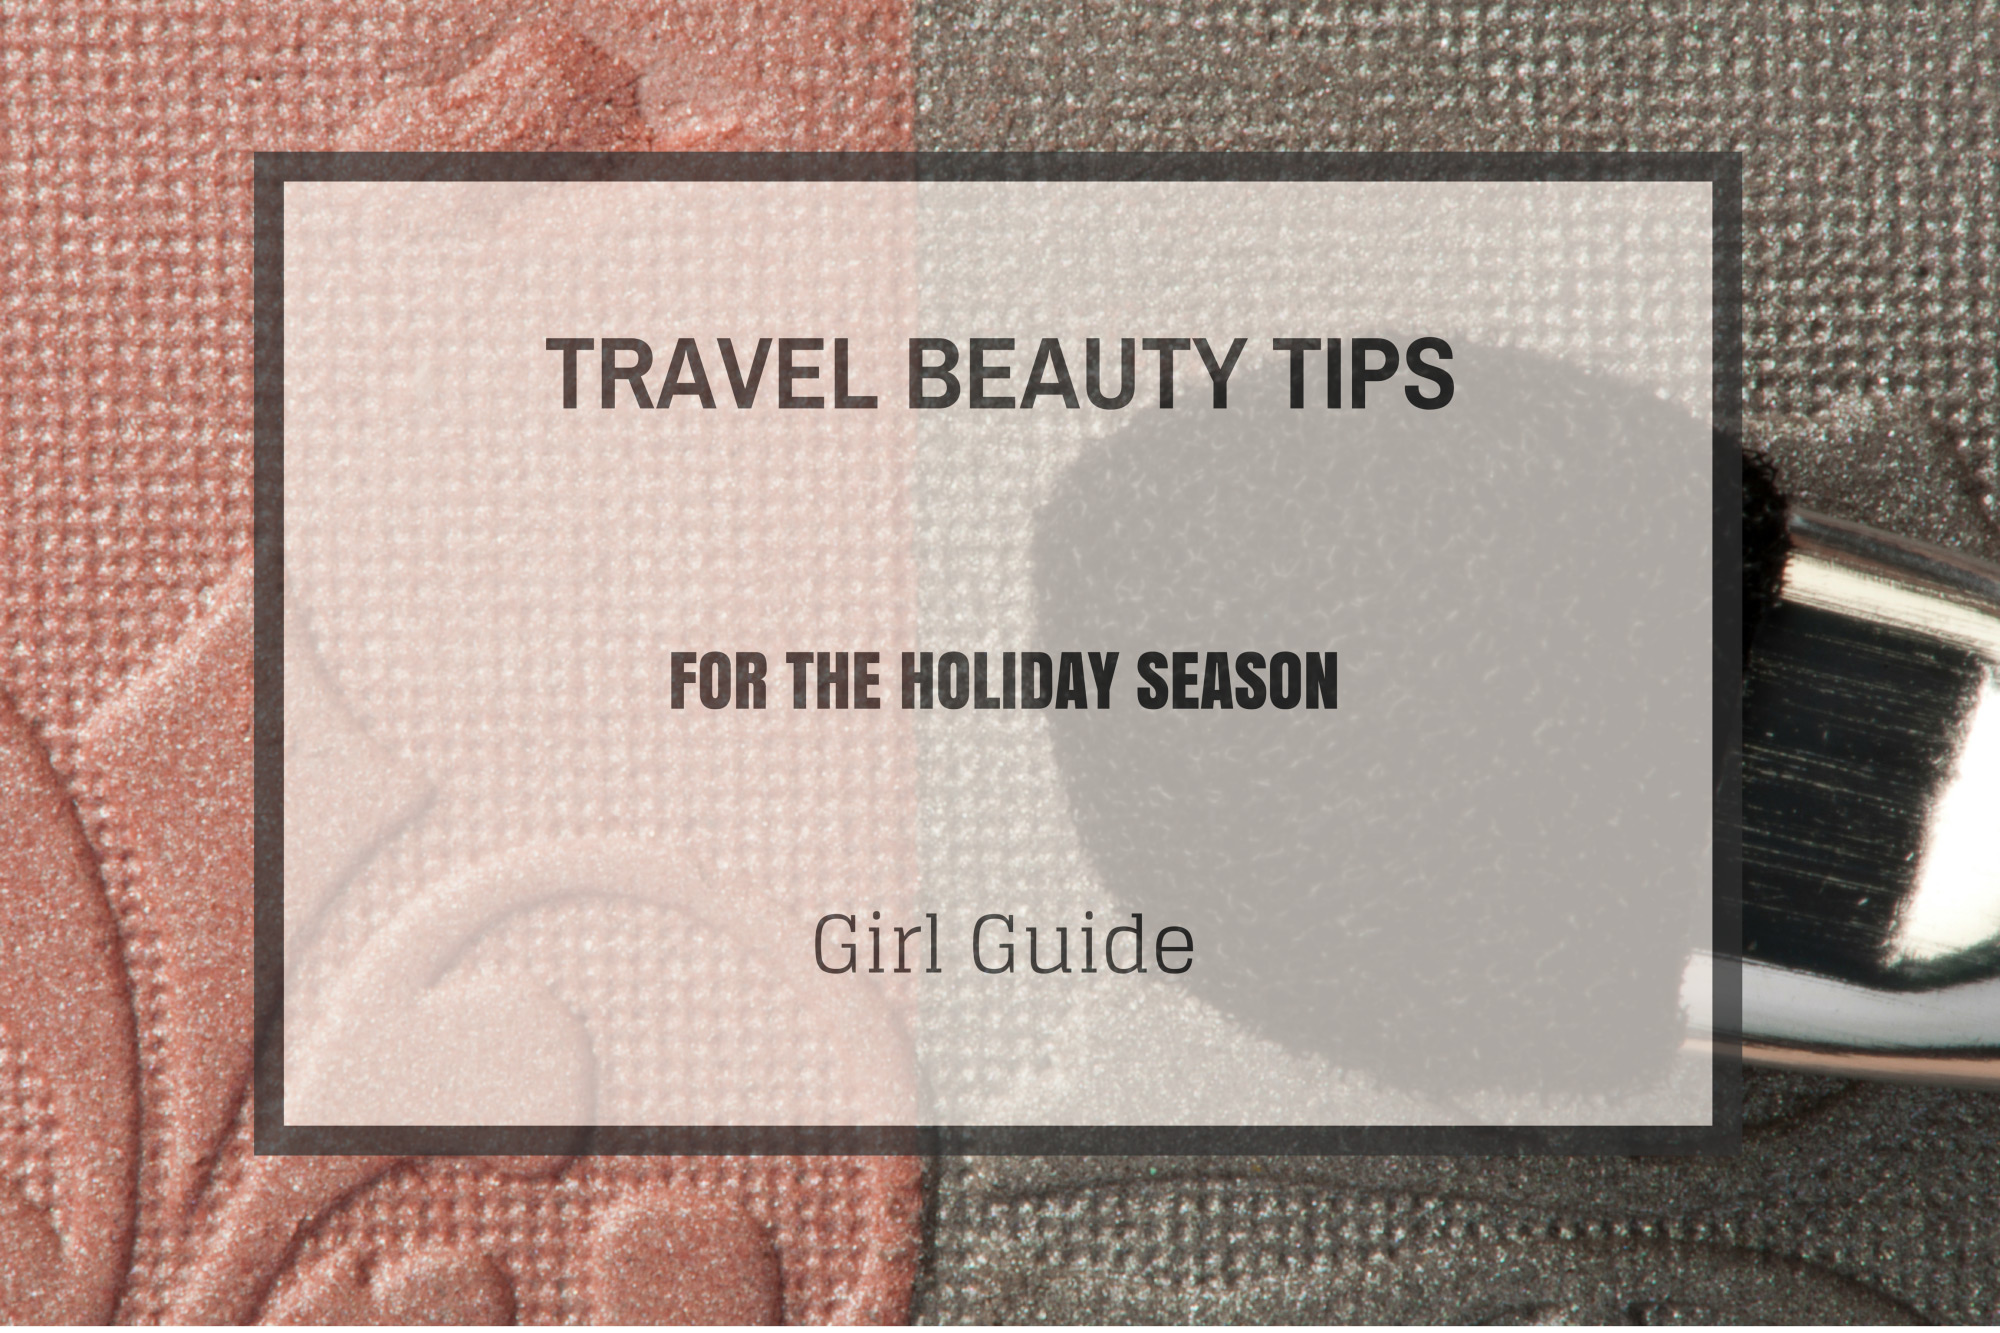 Travel Beauty Tips for the Holiday Season